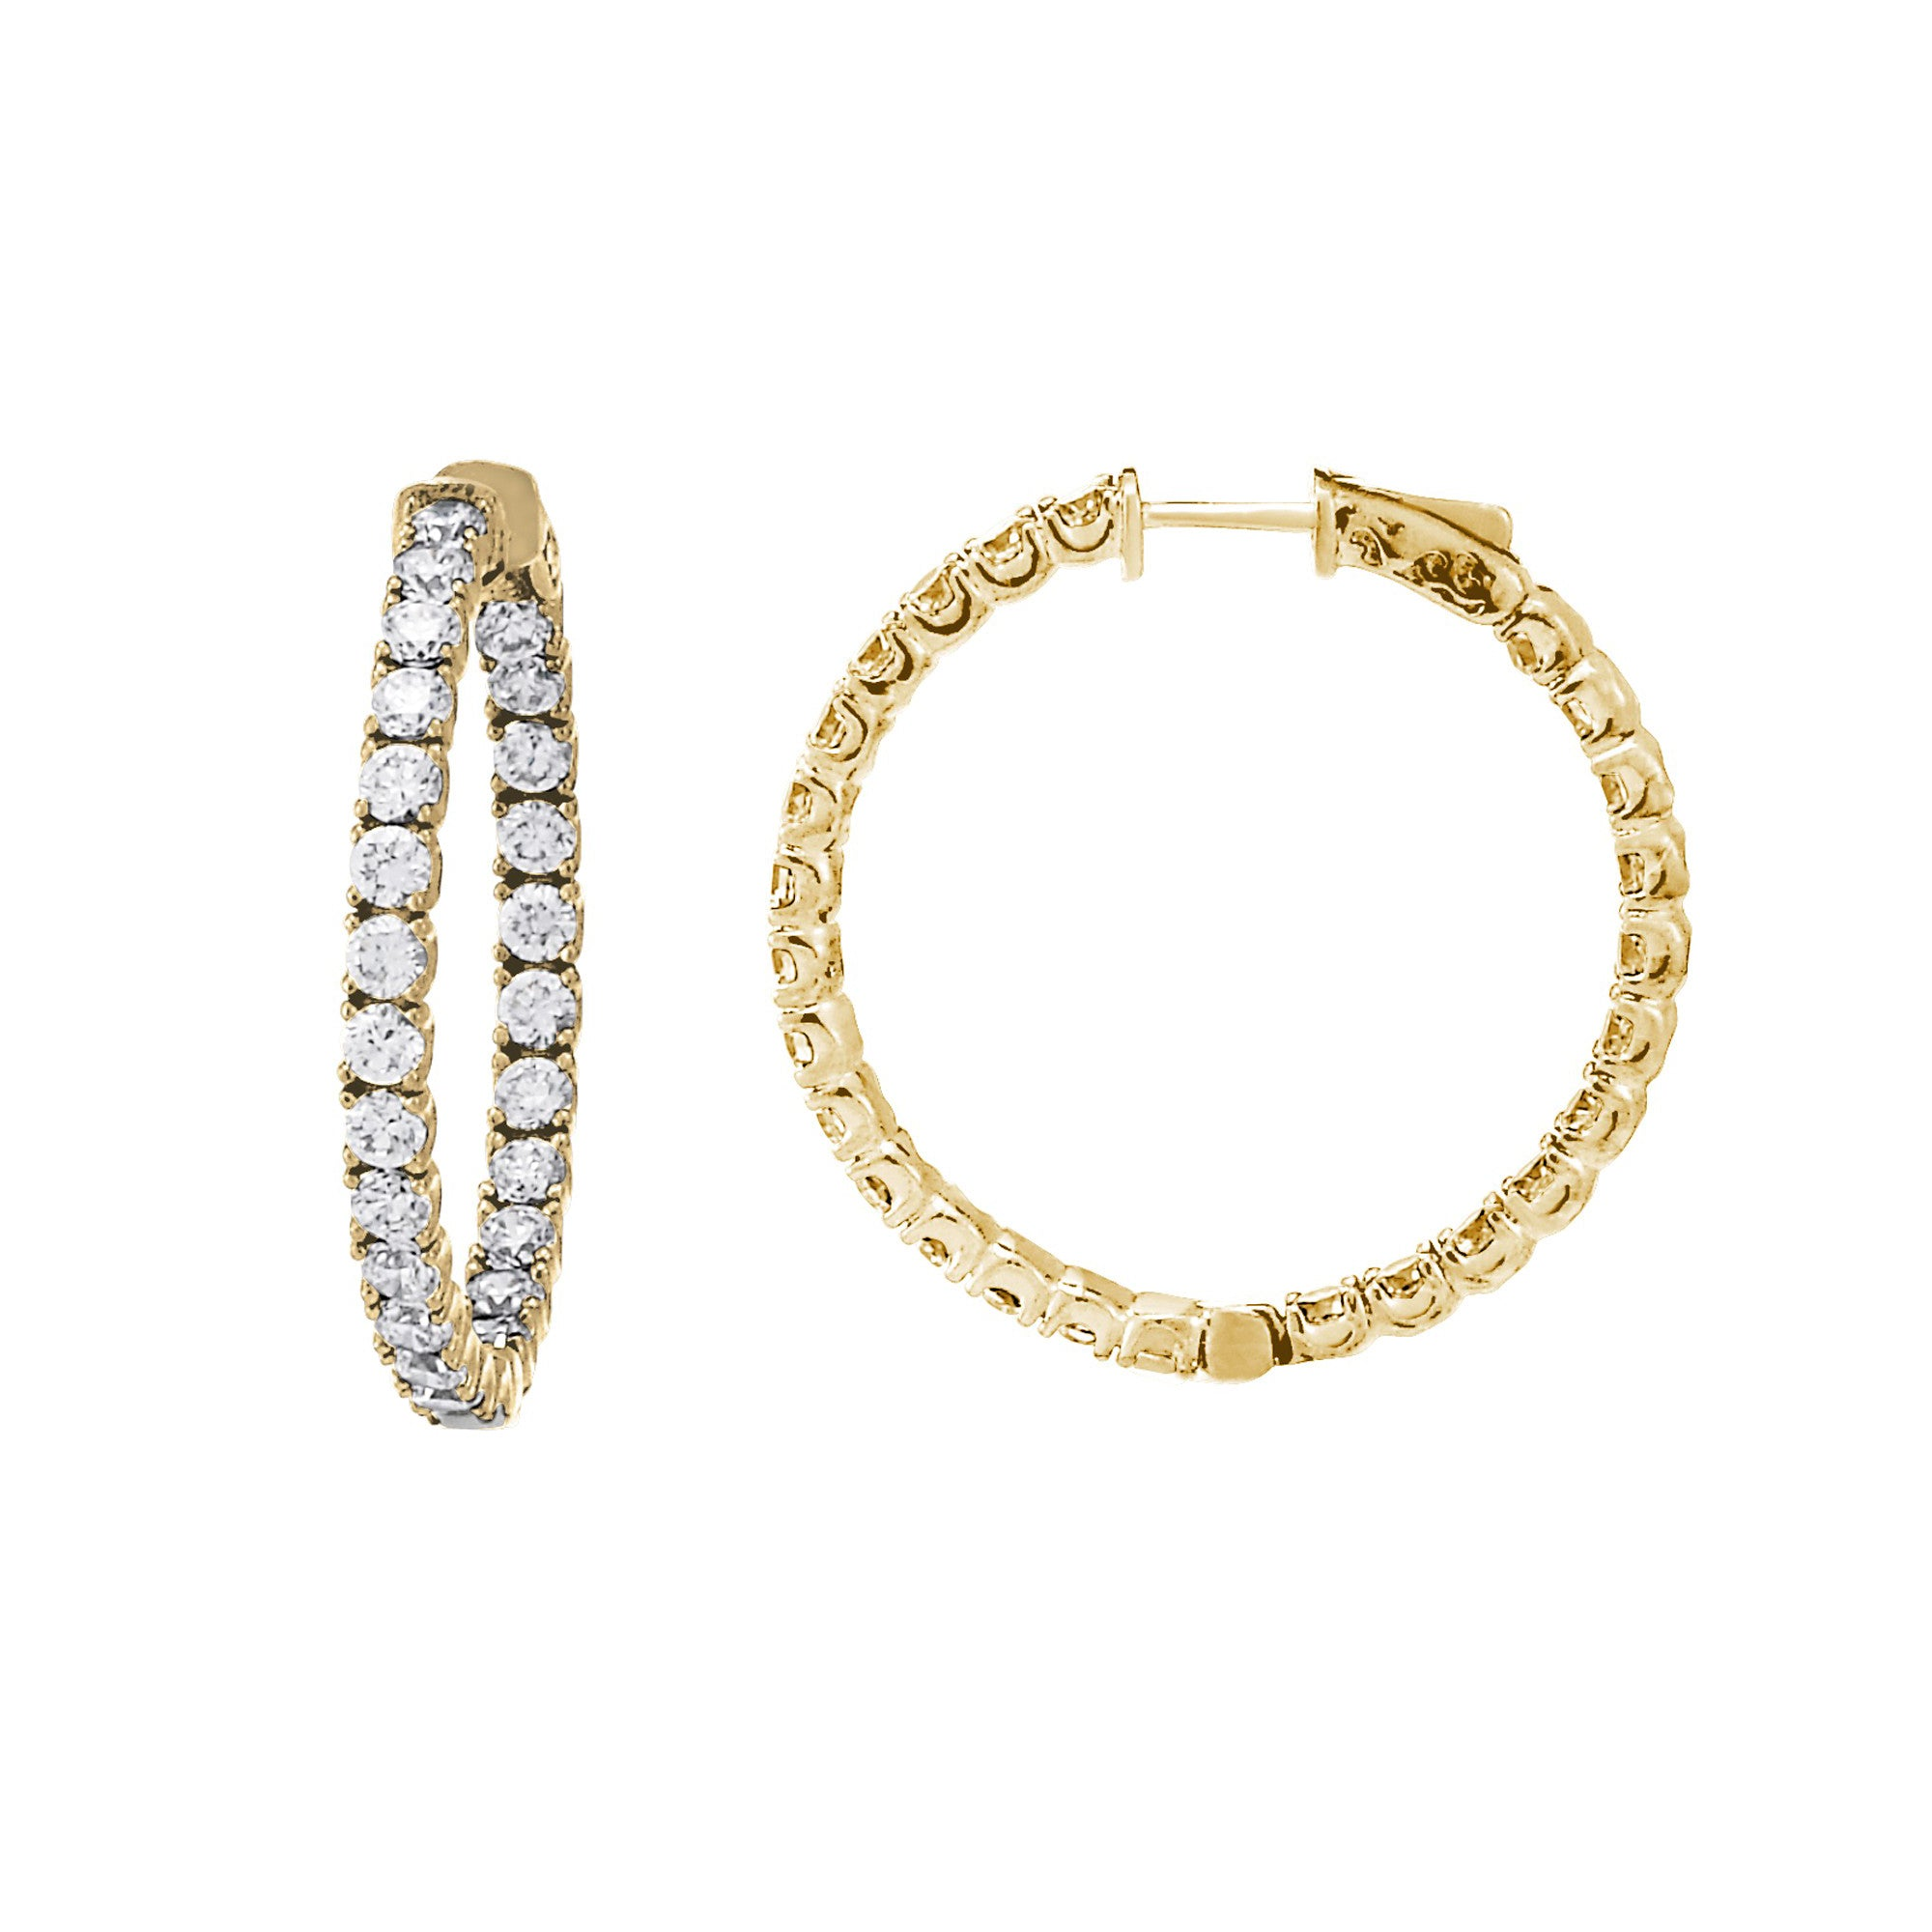 Inside Out CZ Hoops, 1.40 Inches, Sterling Silver with Yellow Gold Plating